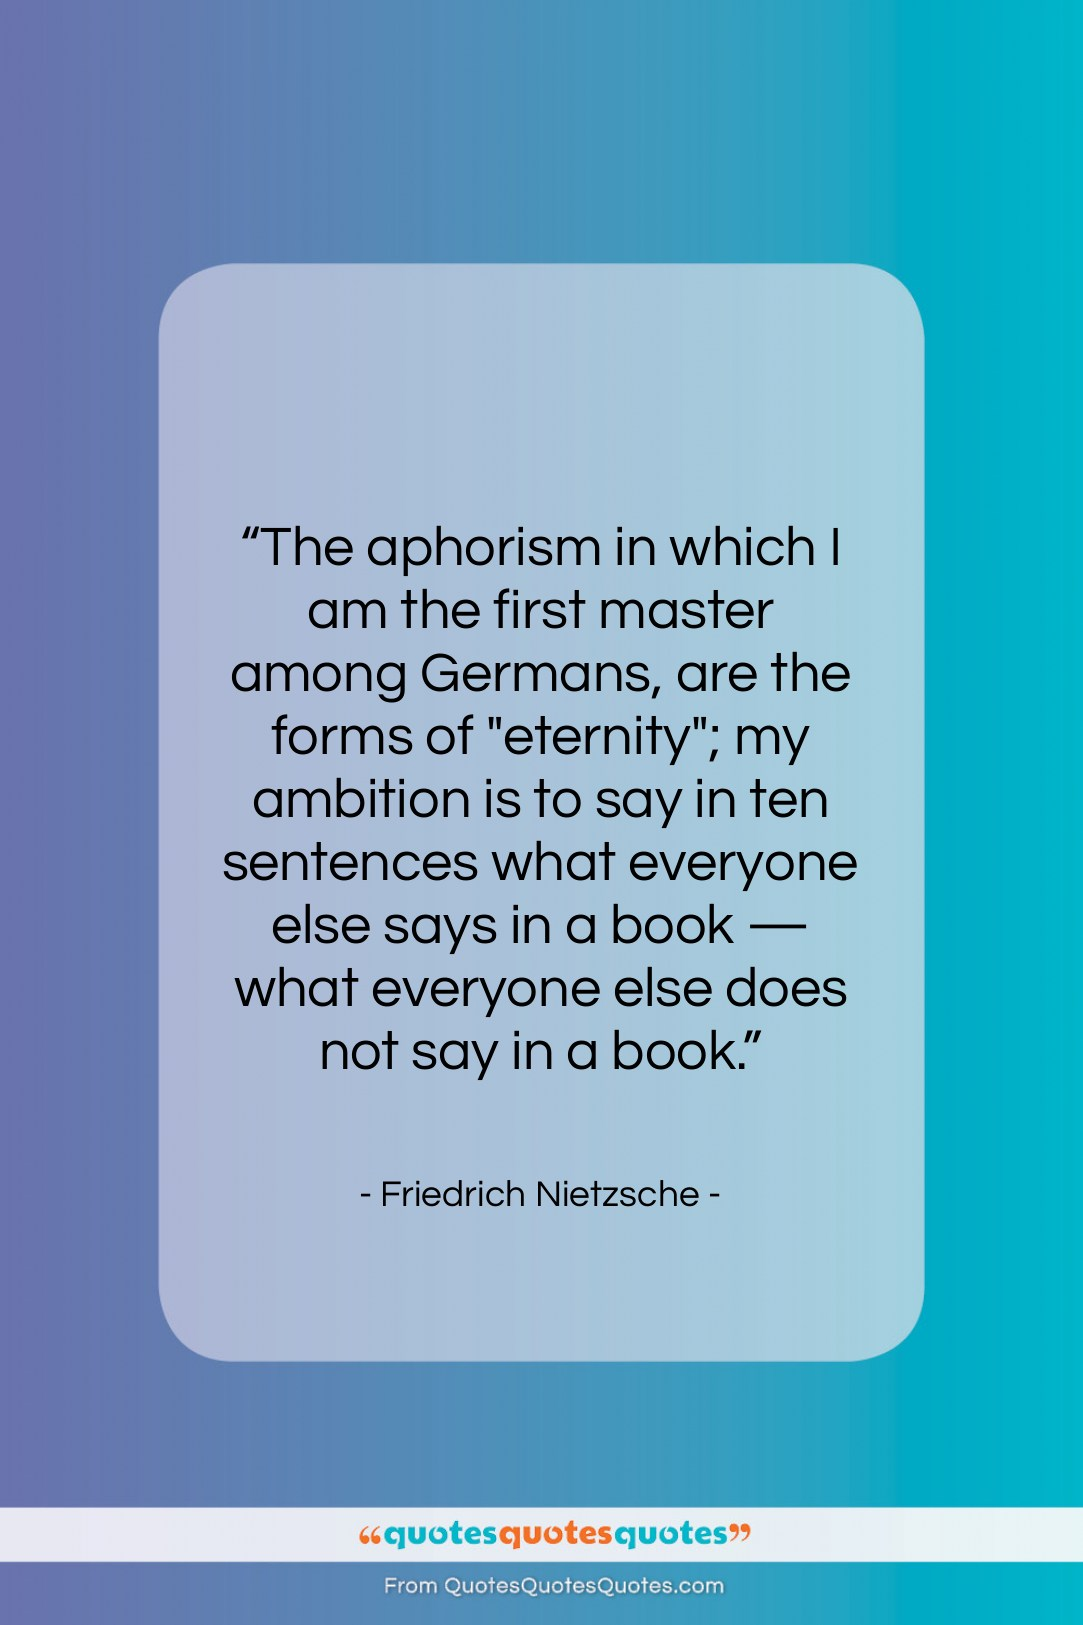 """Friedrich Nietzsche quote: """"The aphorism in which I am the…""""- at QuotesQuotesQuotes.com"""